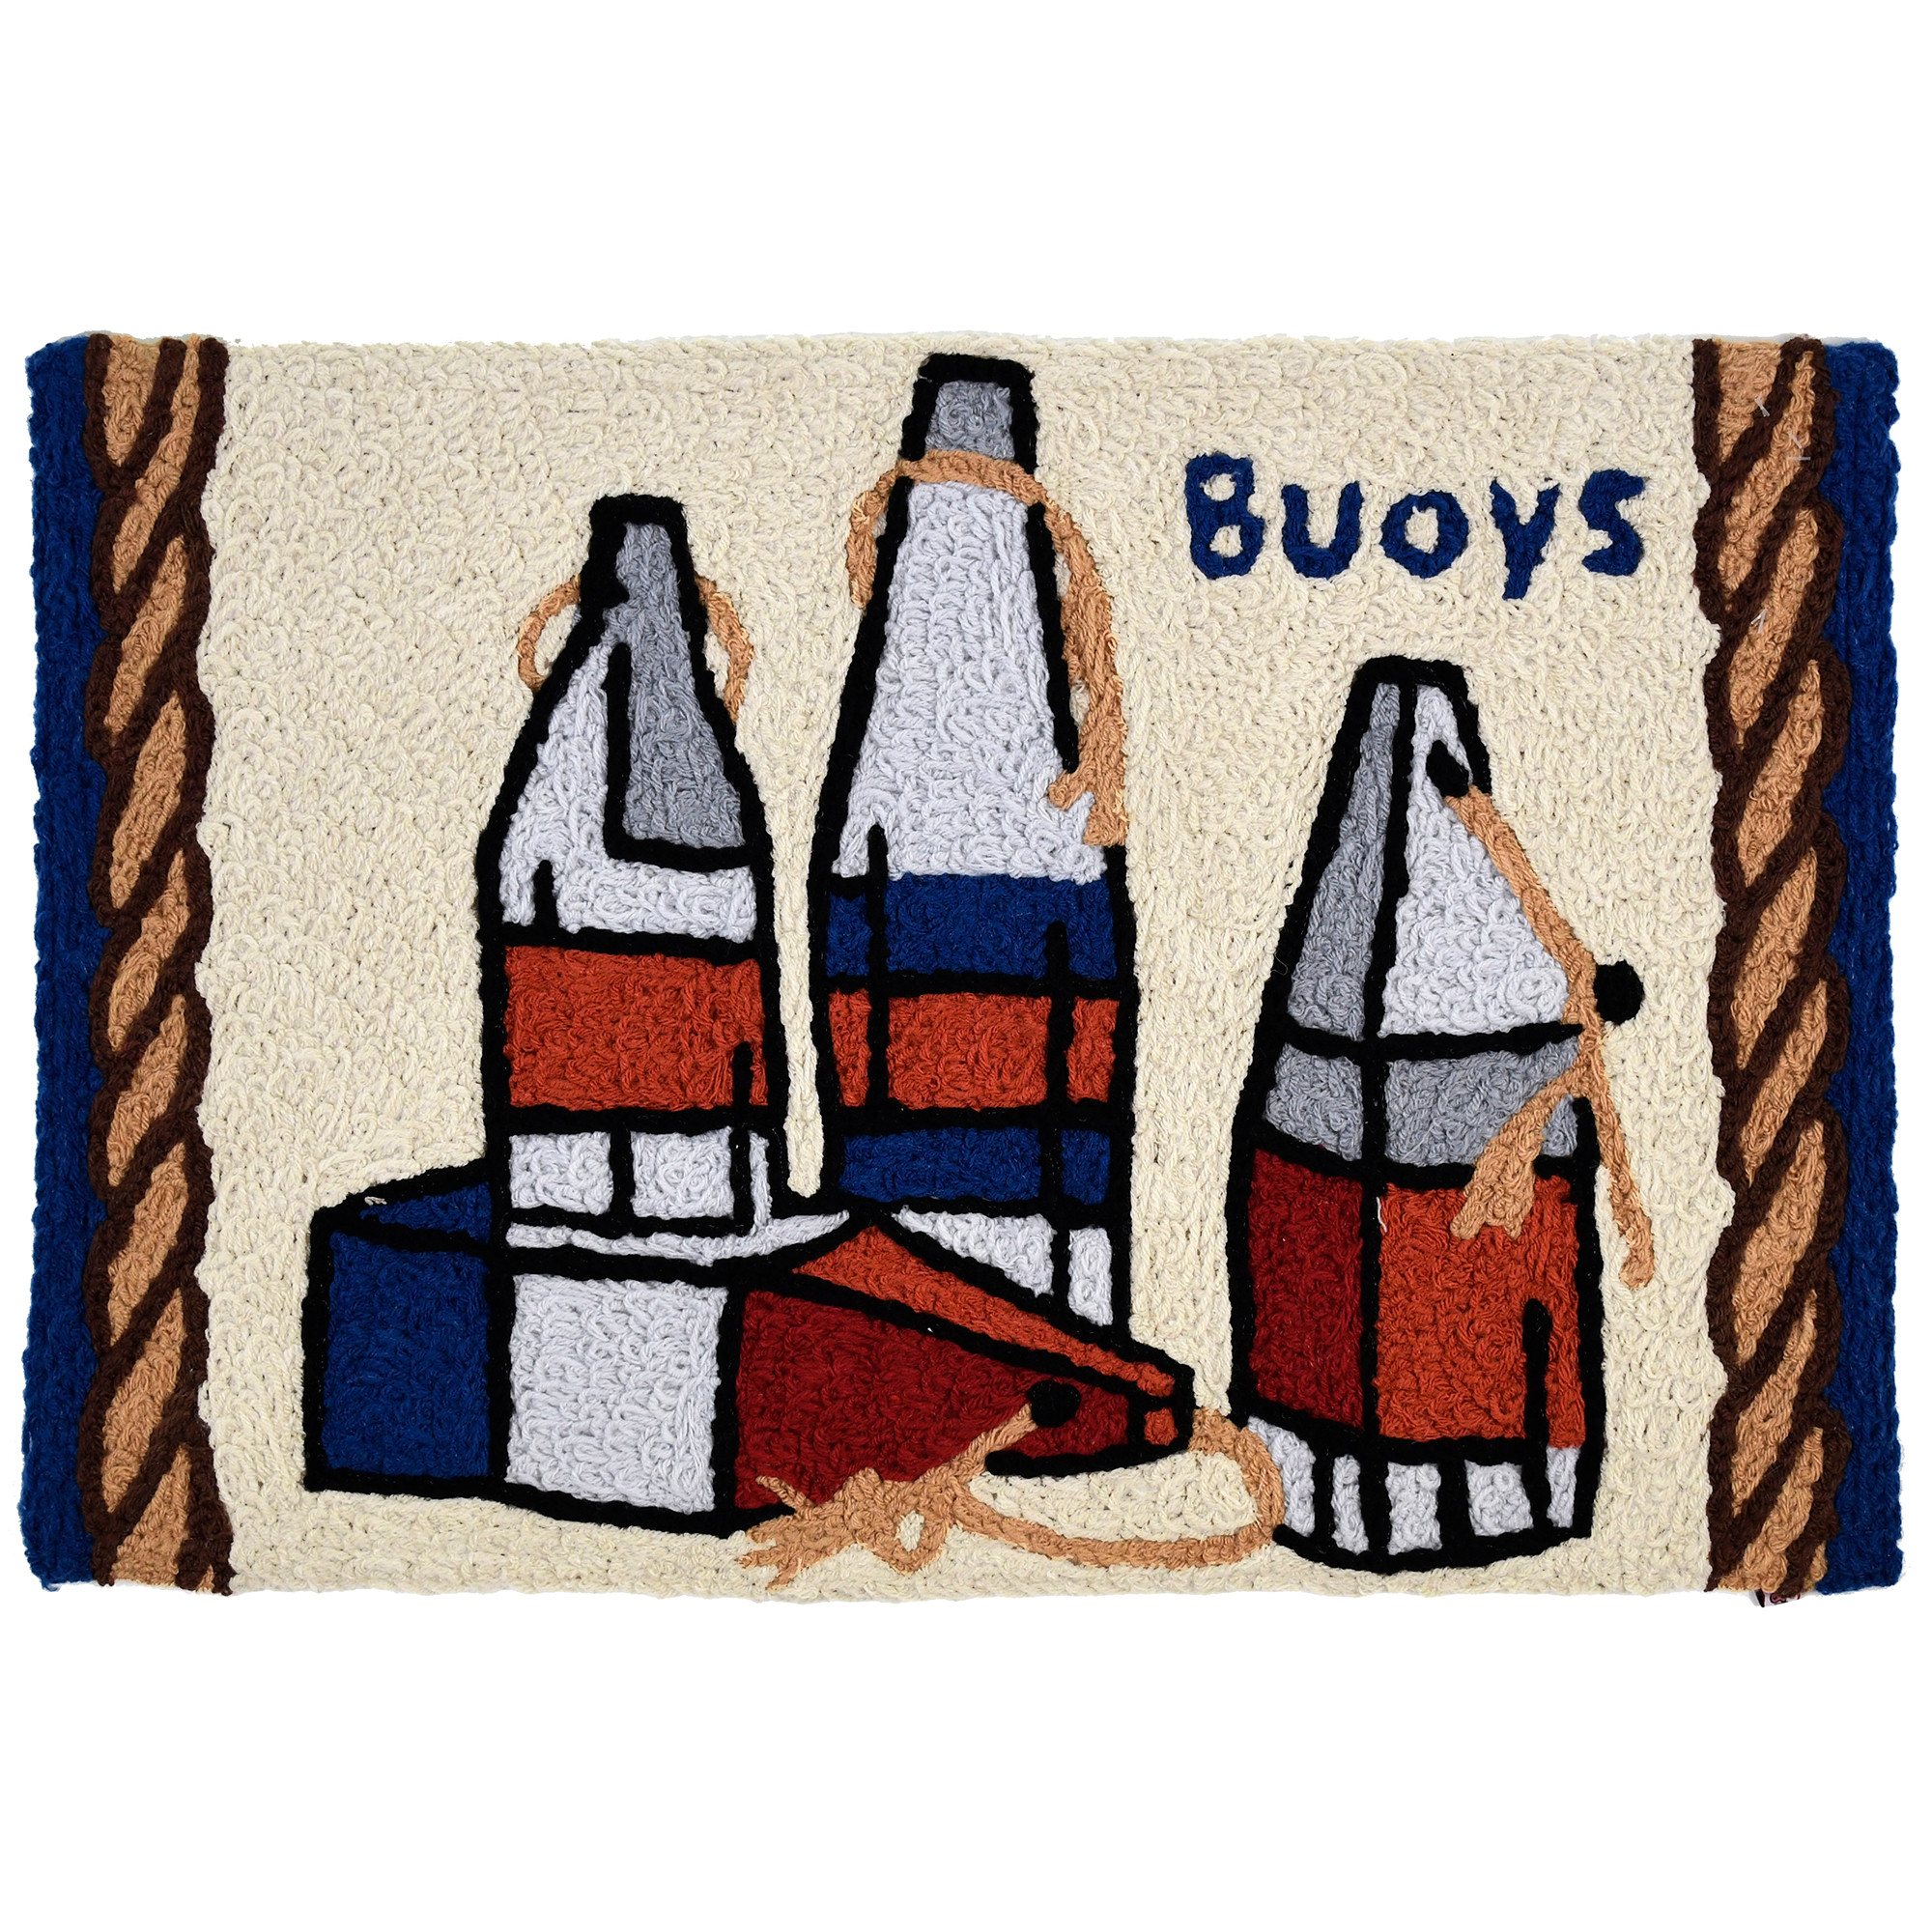 Red, white and blue buoys conjure thoughts of summer time fun on this Jellybean® accent rug. Washable rugs by Jellybean® offer enjoyment for many washes to come. Our accent rugs are hand tufted using partially recycled materials.